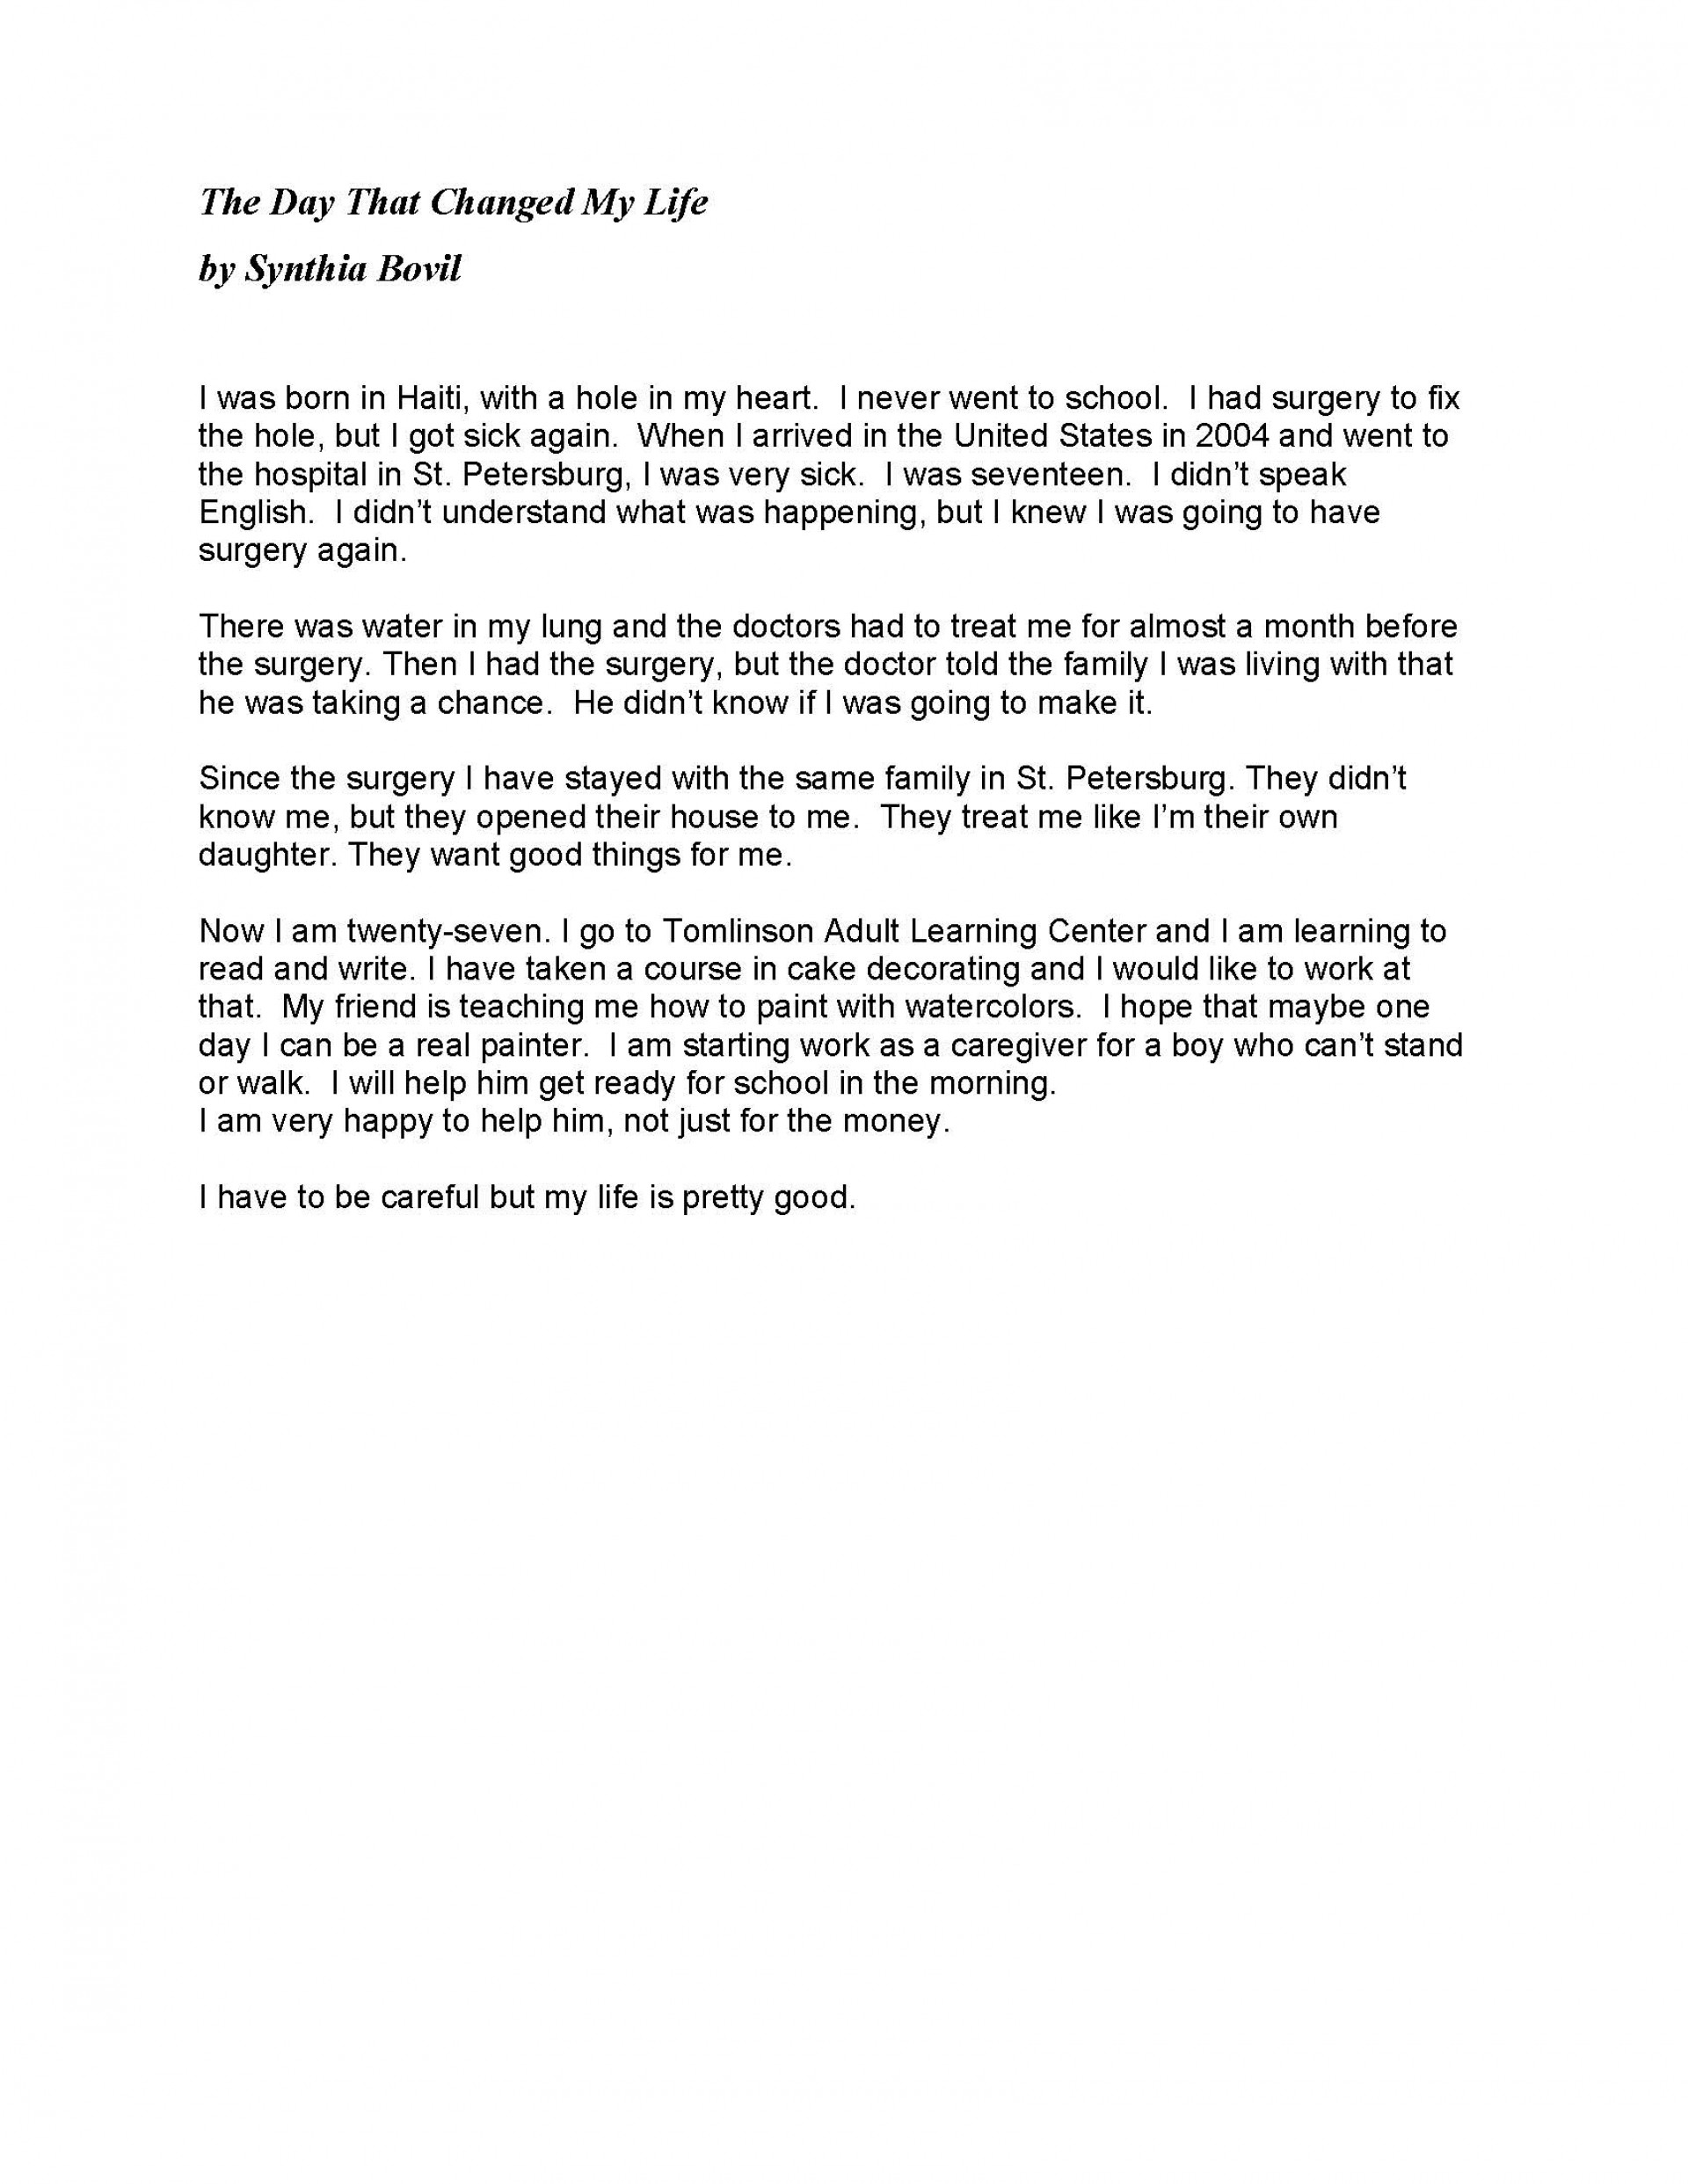 010 Essay Example Student Stories May 2014 Page 1 How Technology Has Changed Our Awesome Lives Pdf On For The Worst 1920